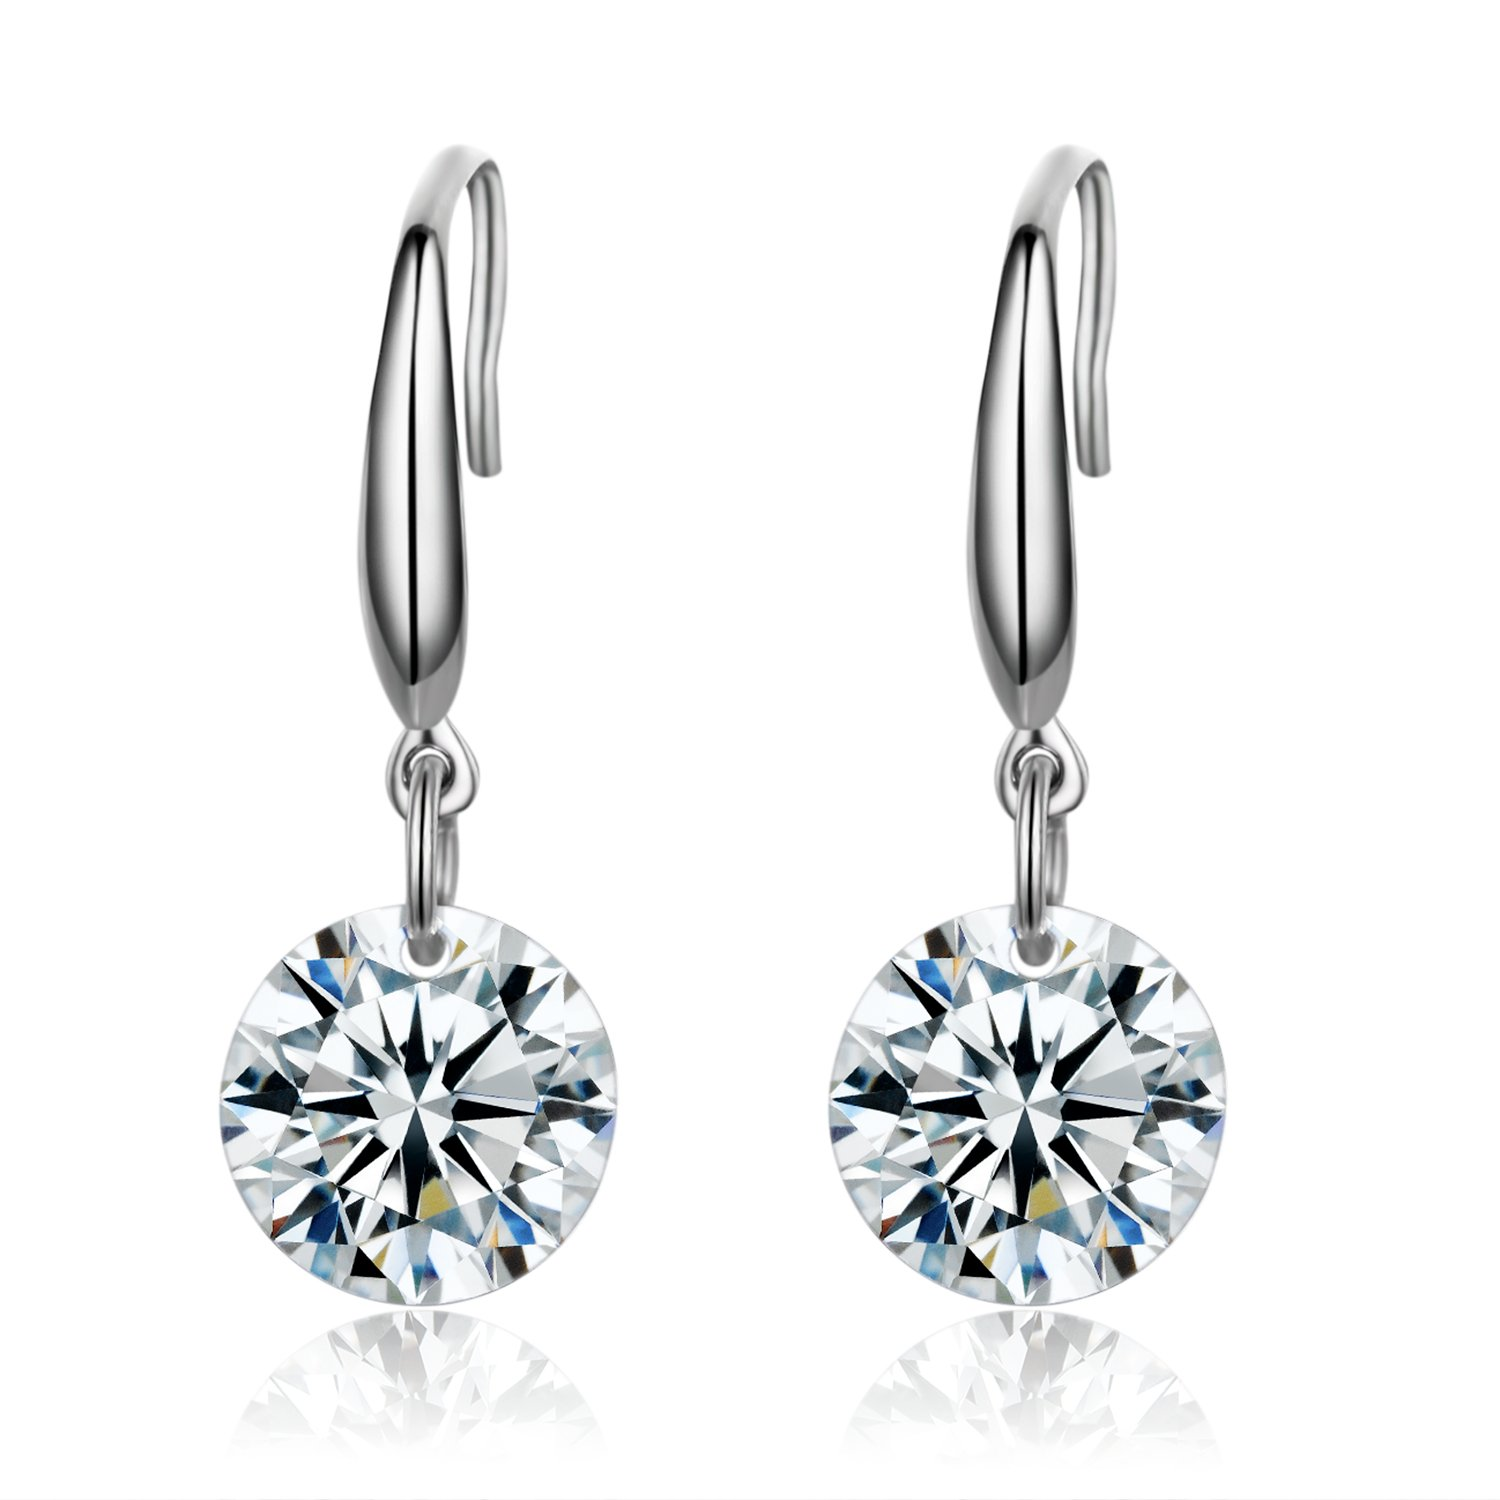 6bb85ae4a Amazon.com: SBLING Platinum-Plated Sterling Silver Drop Earrings Made with  Swarovski Crystals (4 cttw): Jewelry